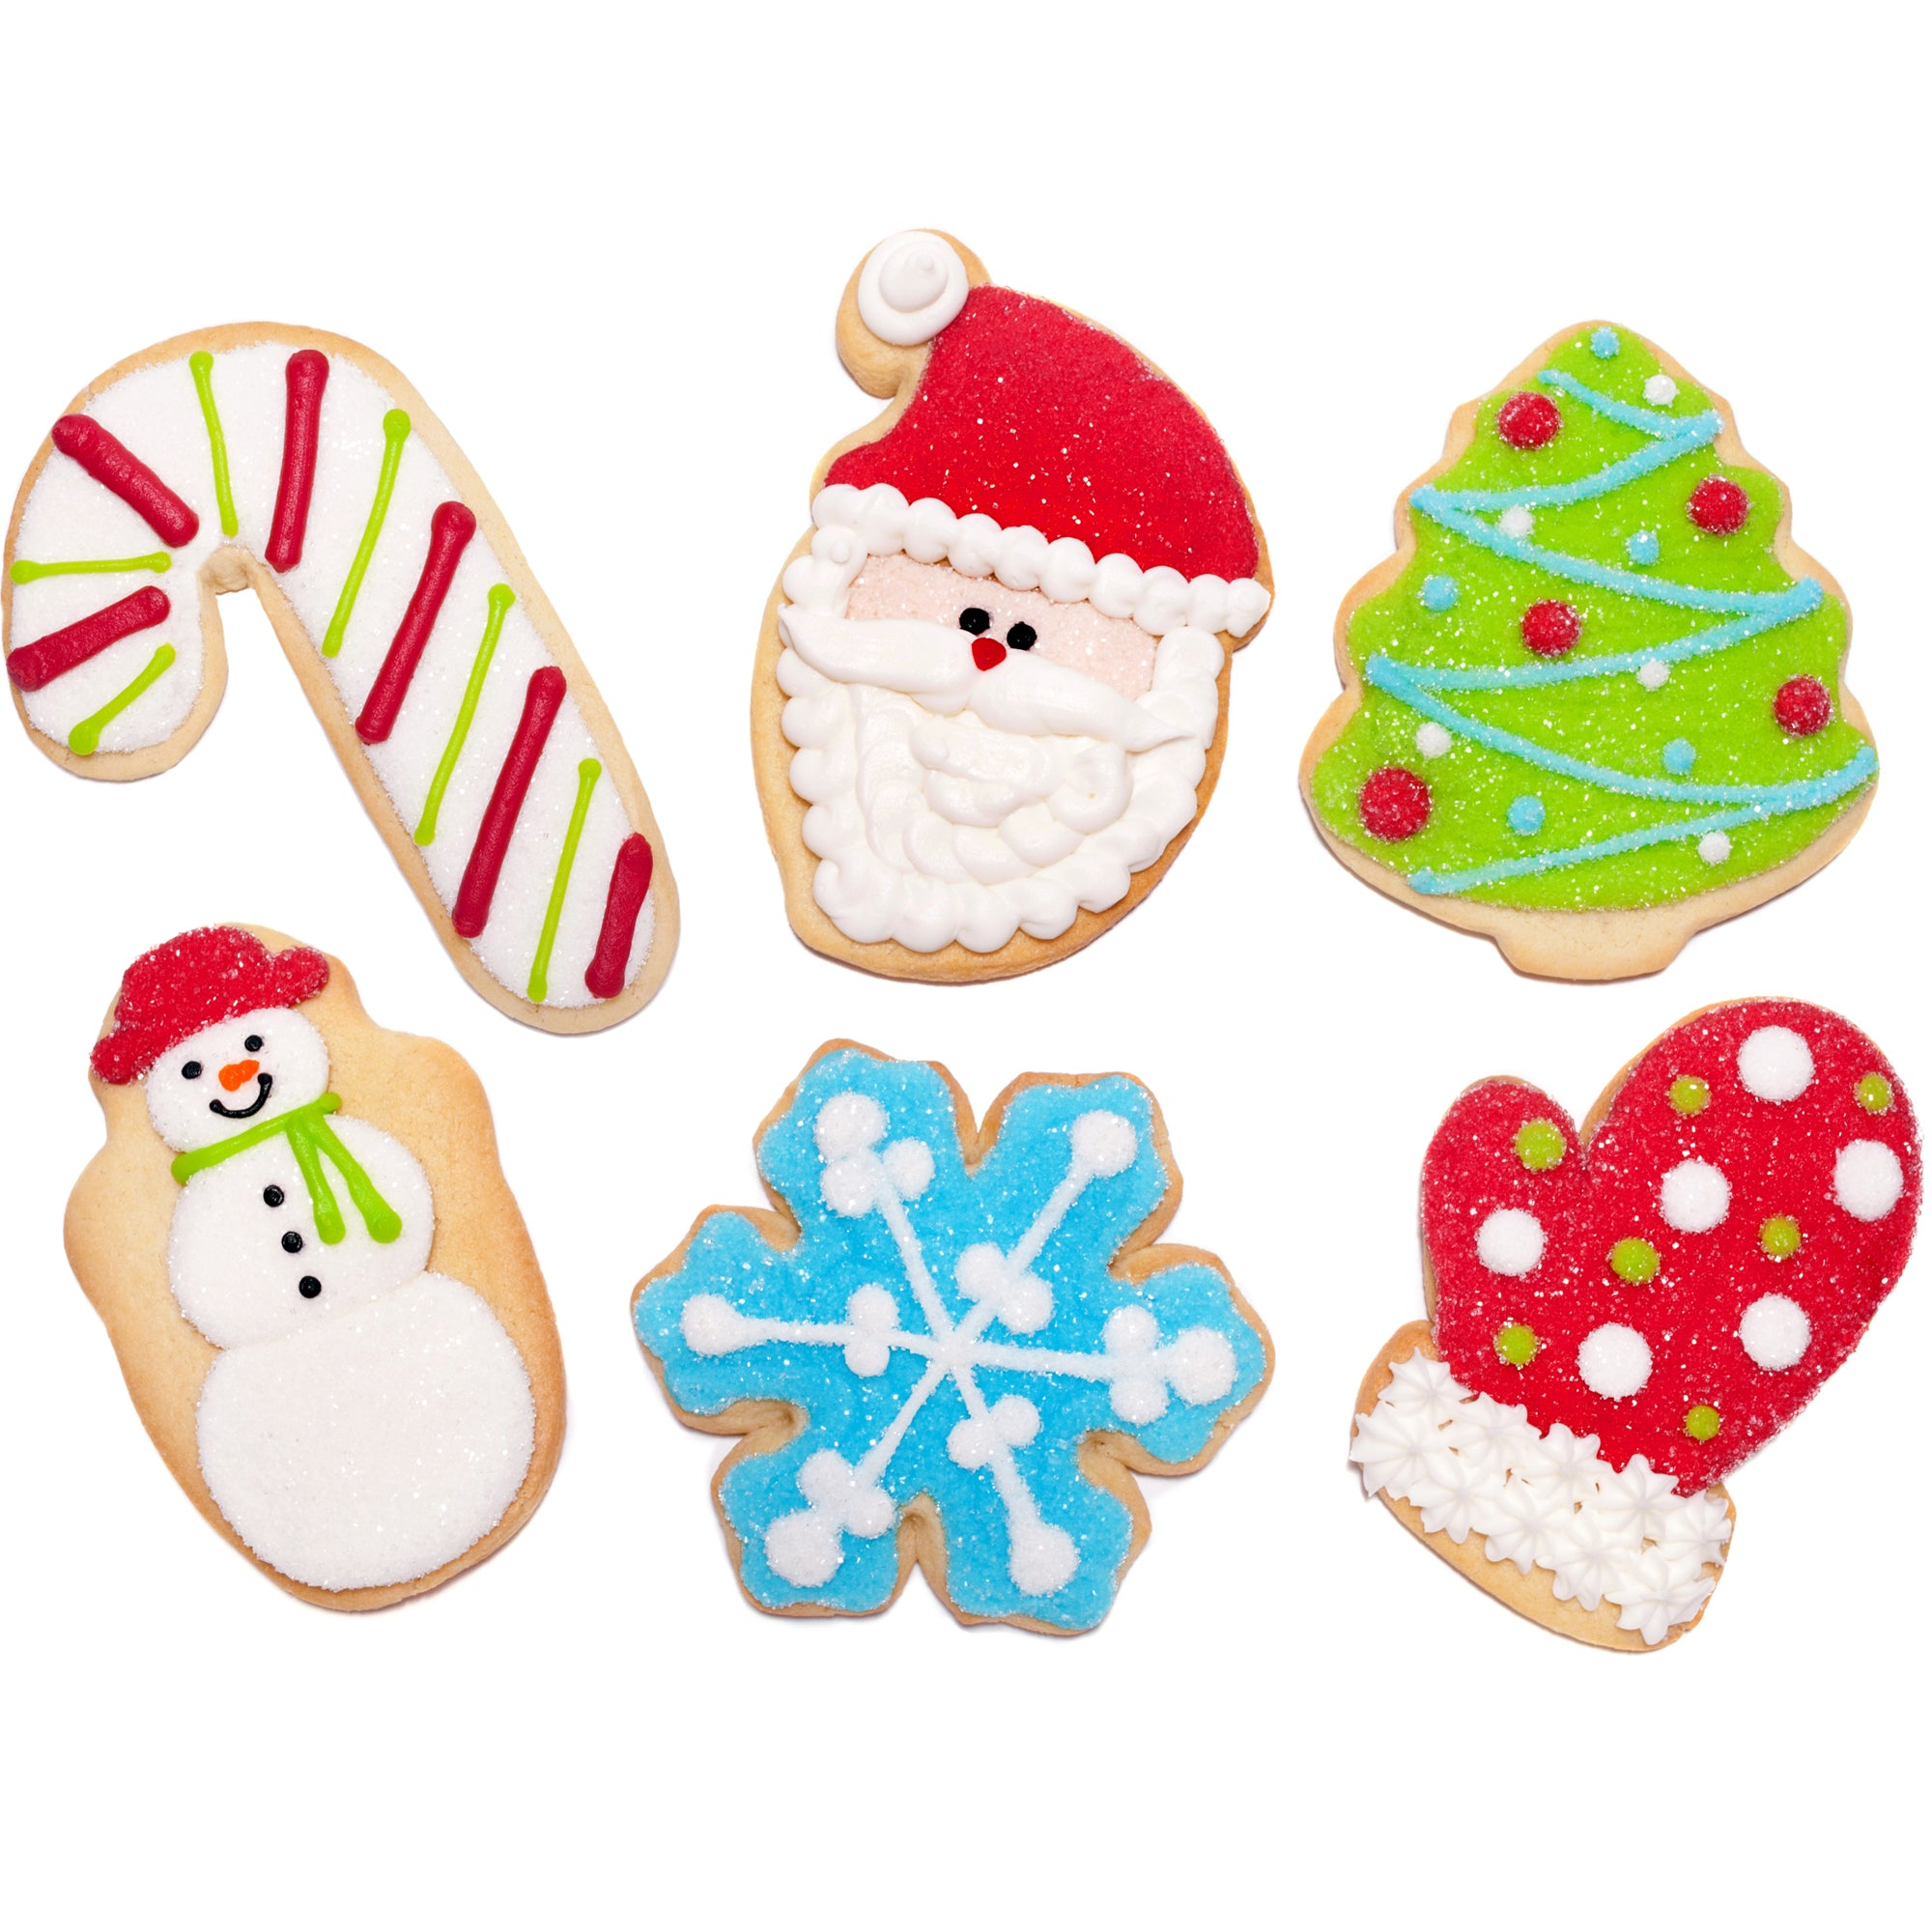 Decorated Christmas Cookies.A Dozen Decorated Christmas Cookies Barbee Cookies